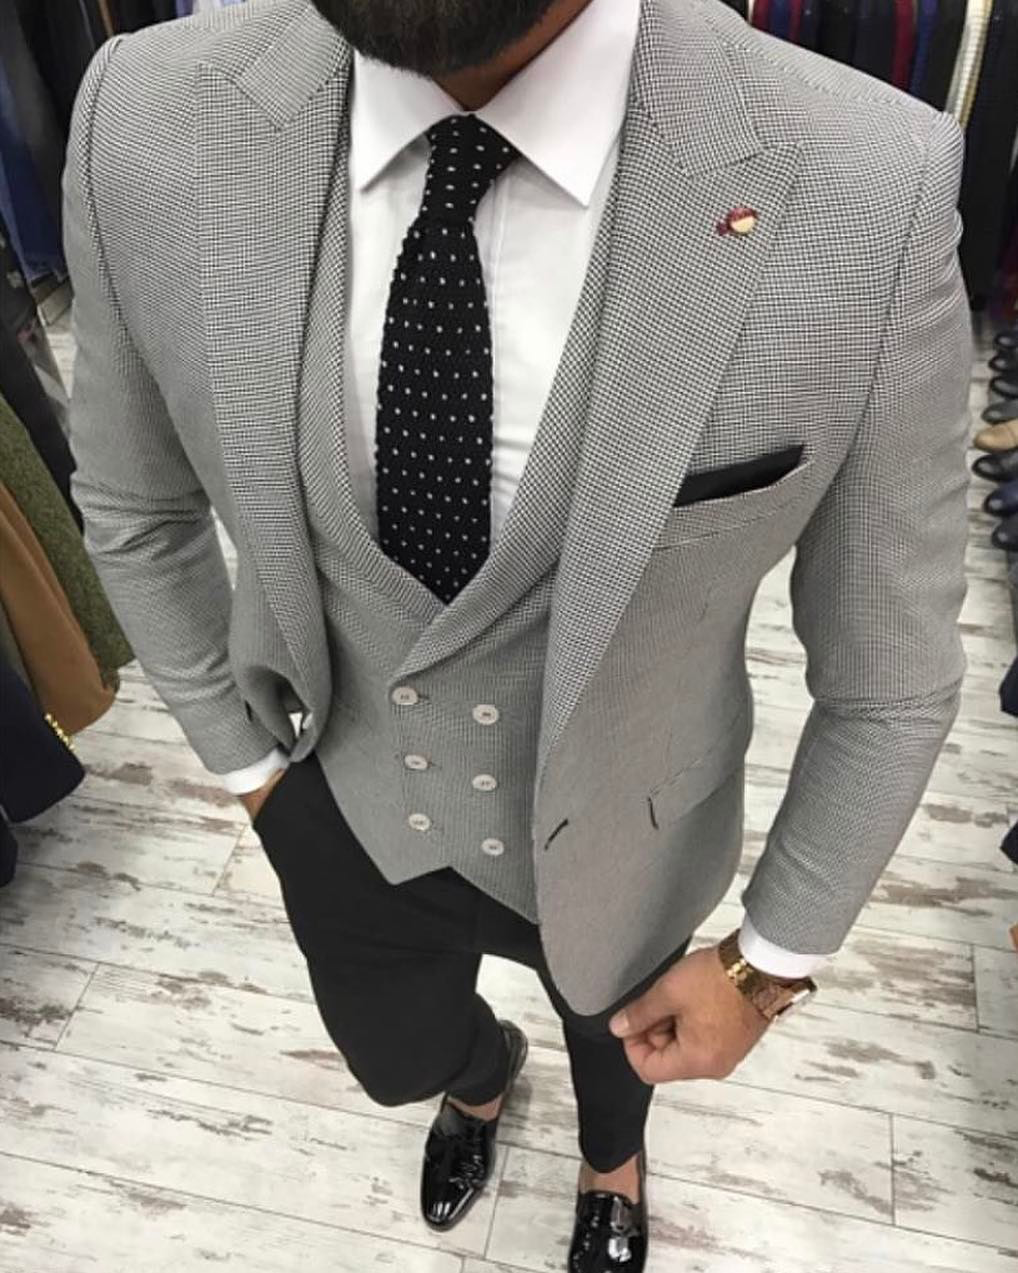 Stylish Groom Inspiration Groom Mensfashion Wedding Suits Men